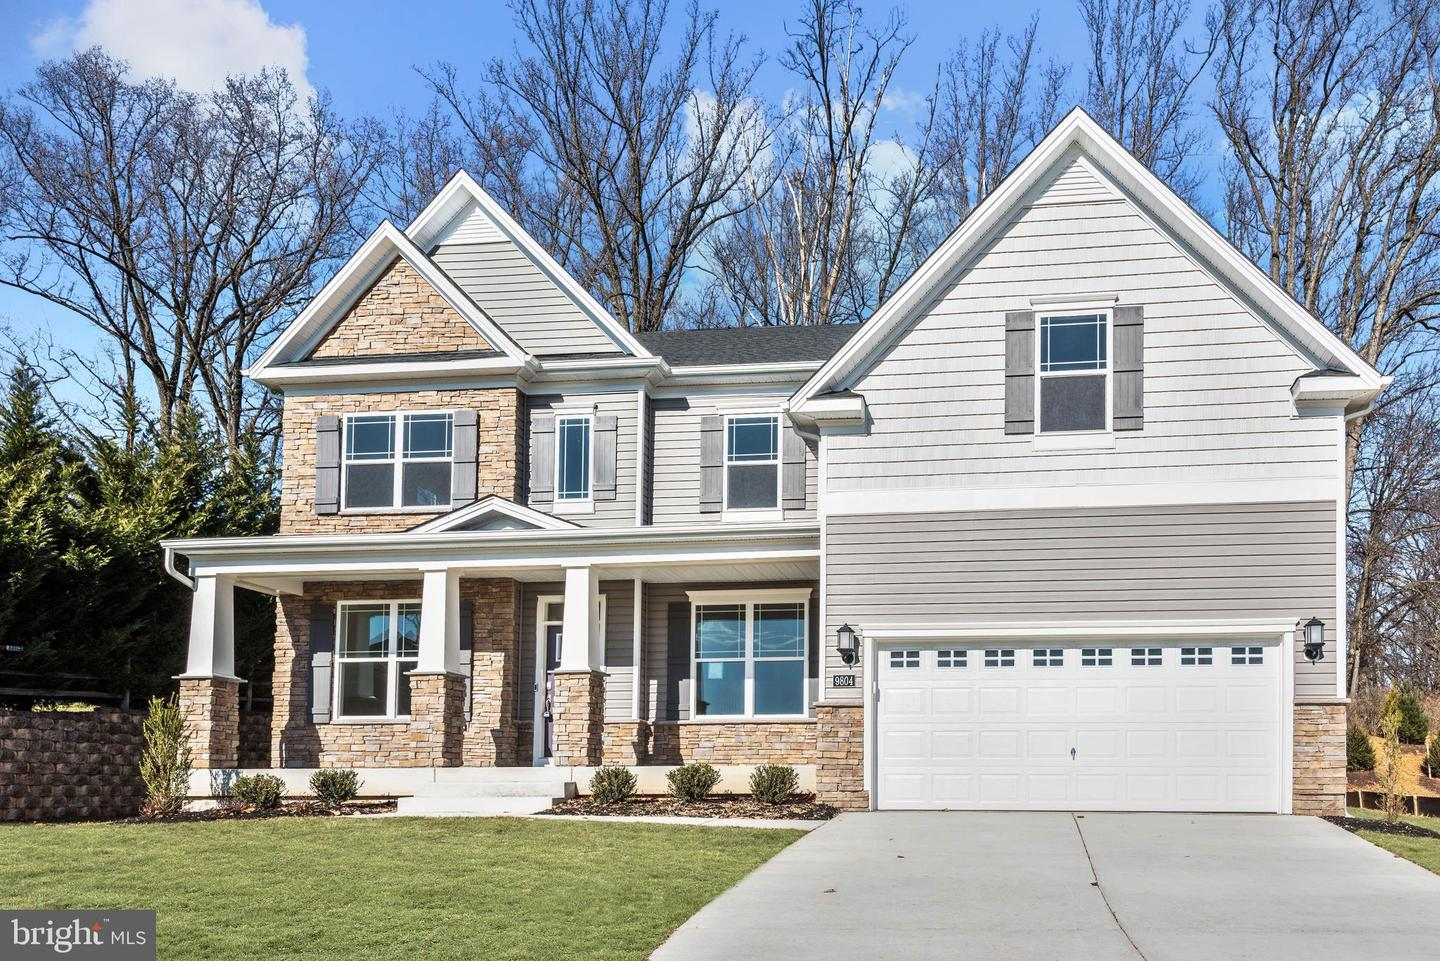 9804 PERRYLAND CT, PERRY HALL, MD 21128